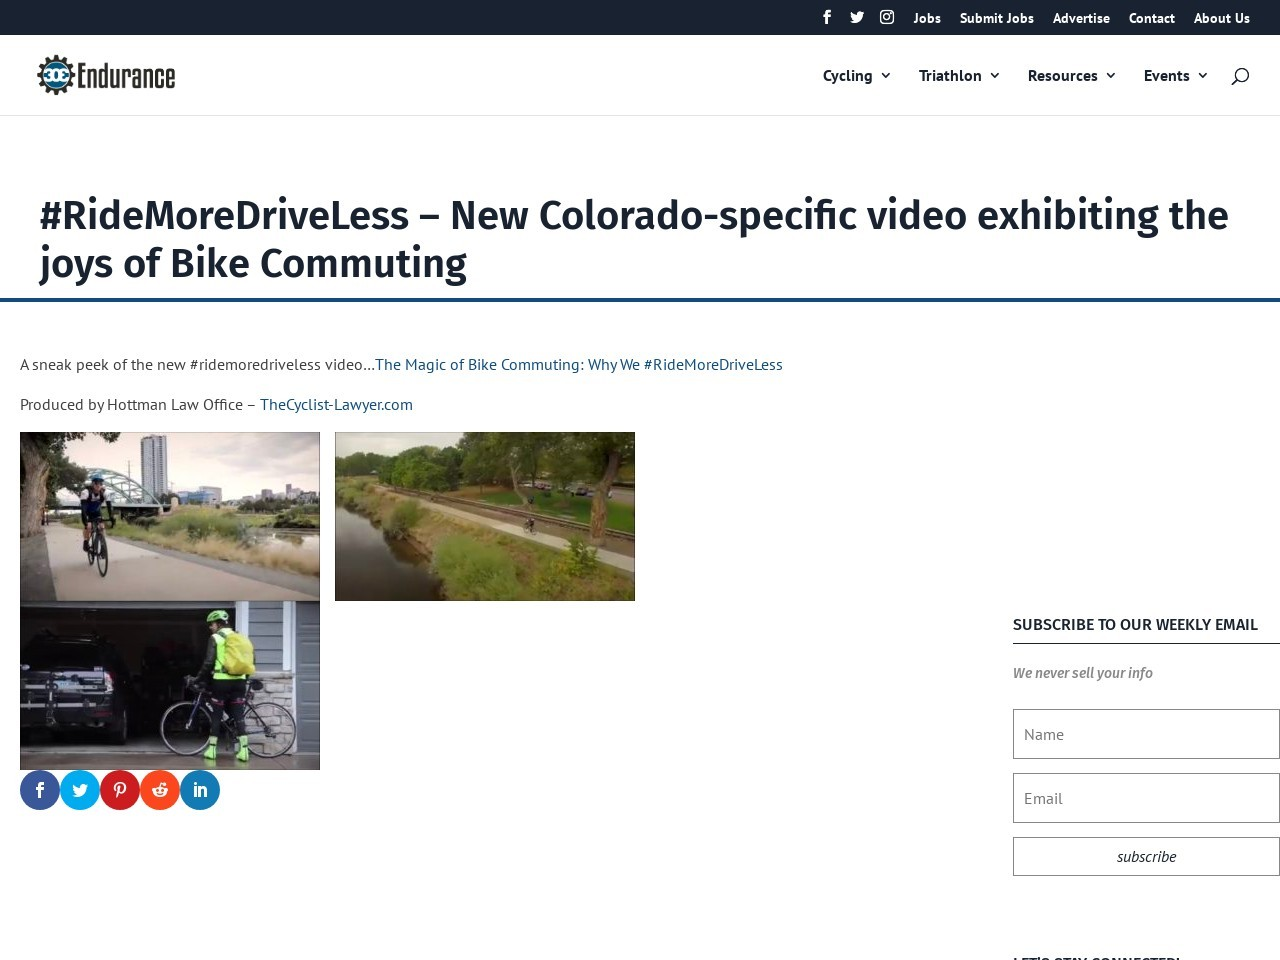 #RideMoreDriveLess – New Colorado-specific video exhibiting the joys of Bike Commuting